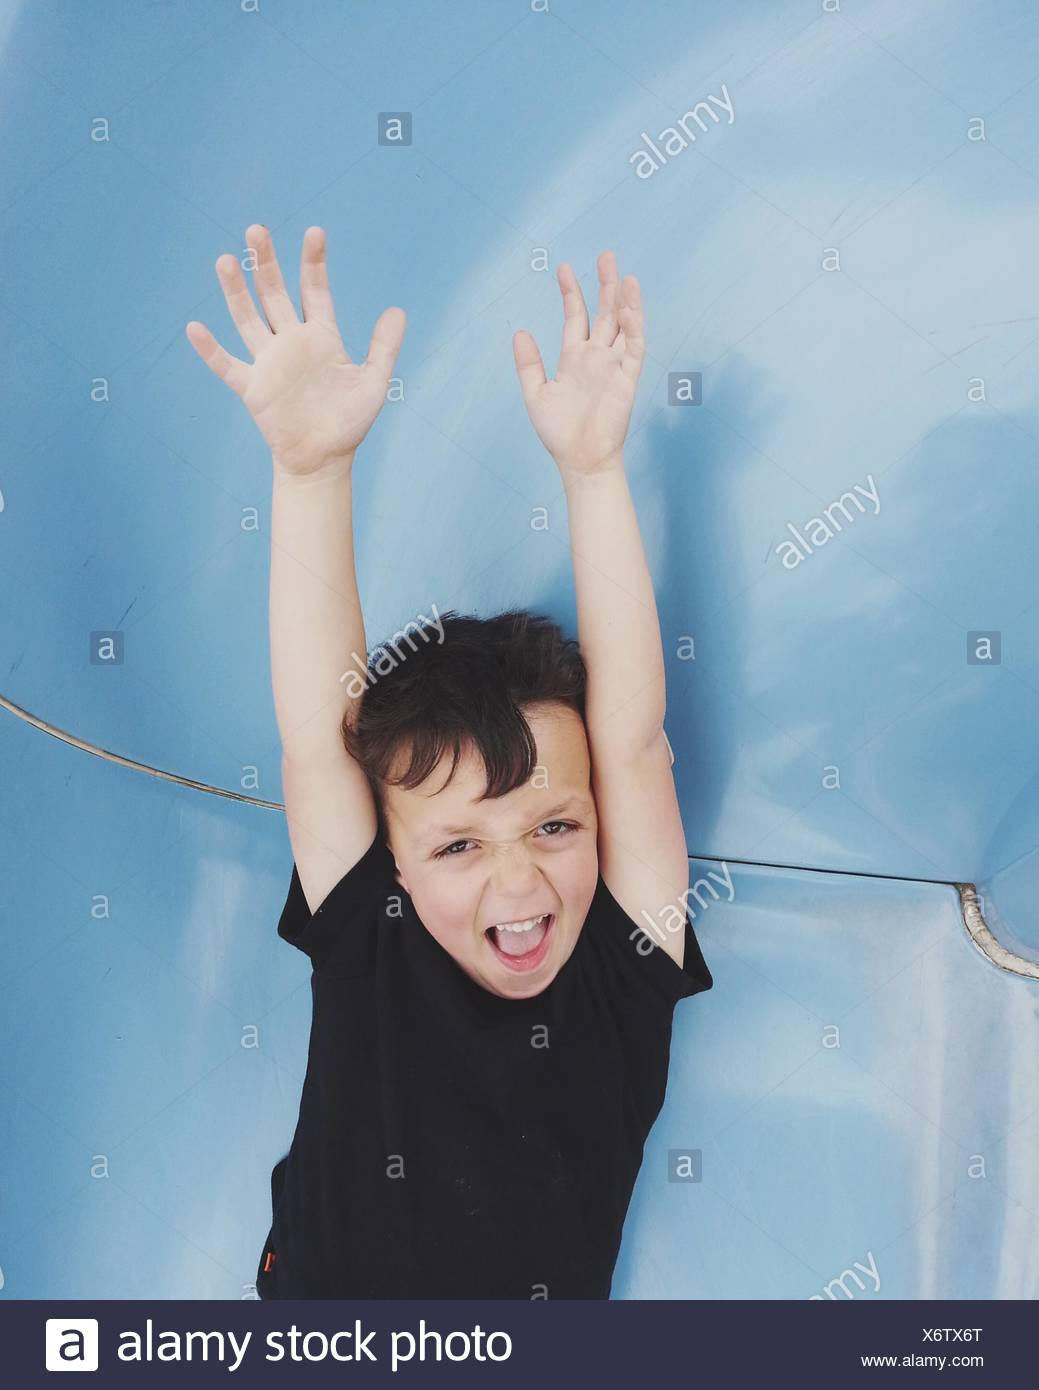 Boy standing with his arms in air - Stock Image